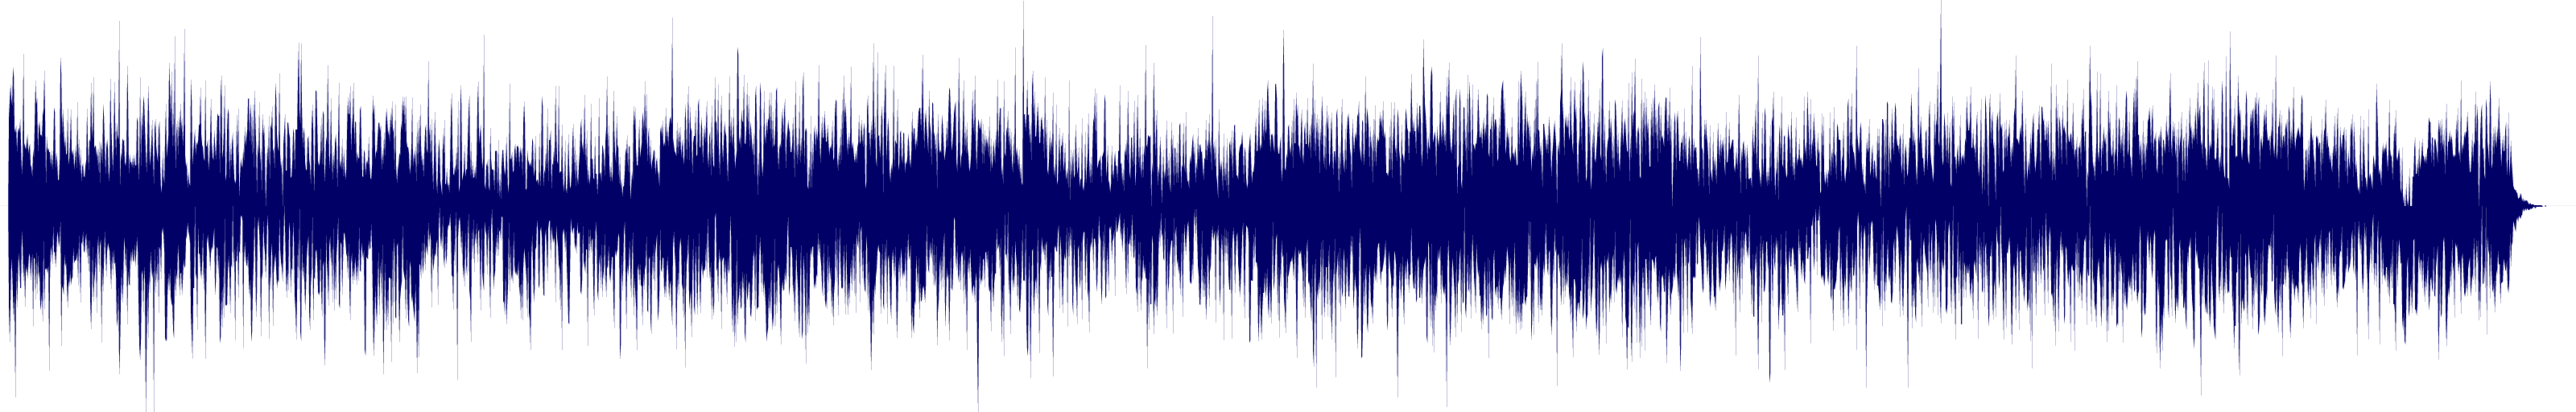 waveform of track #110542